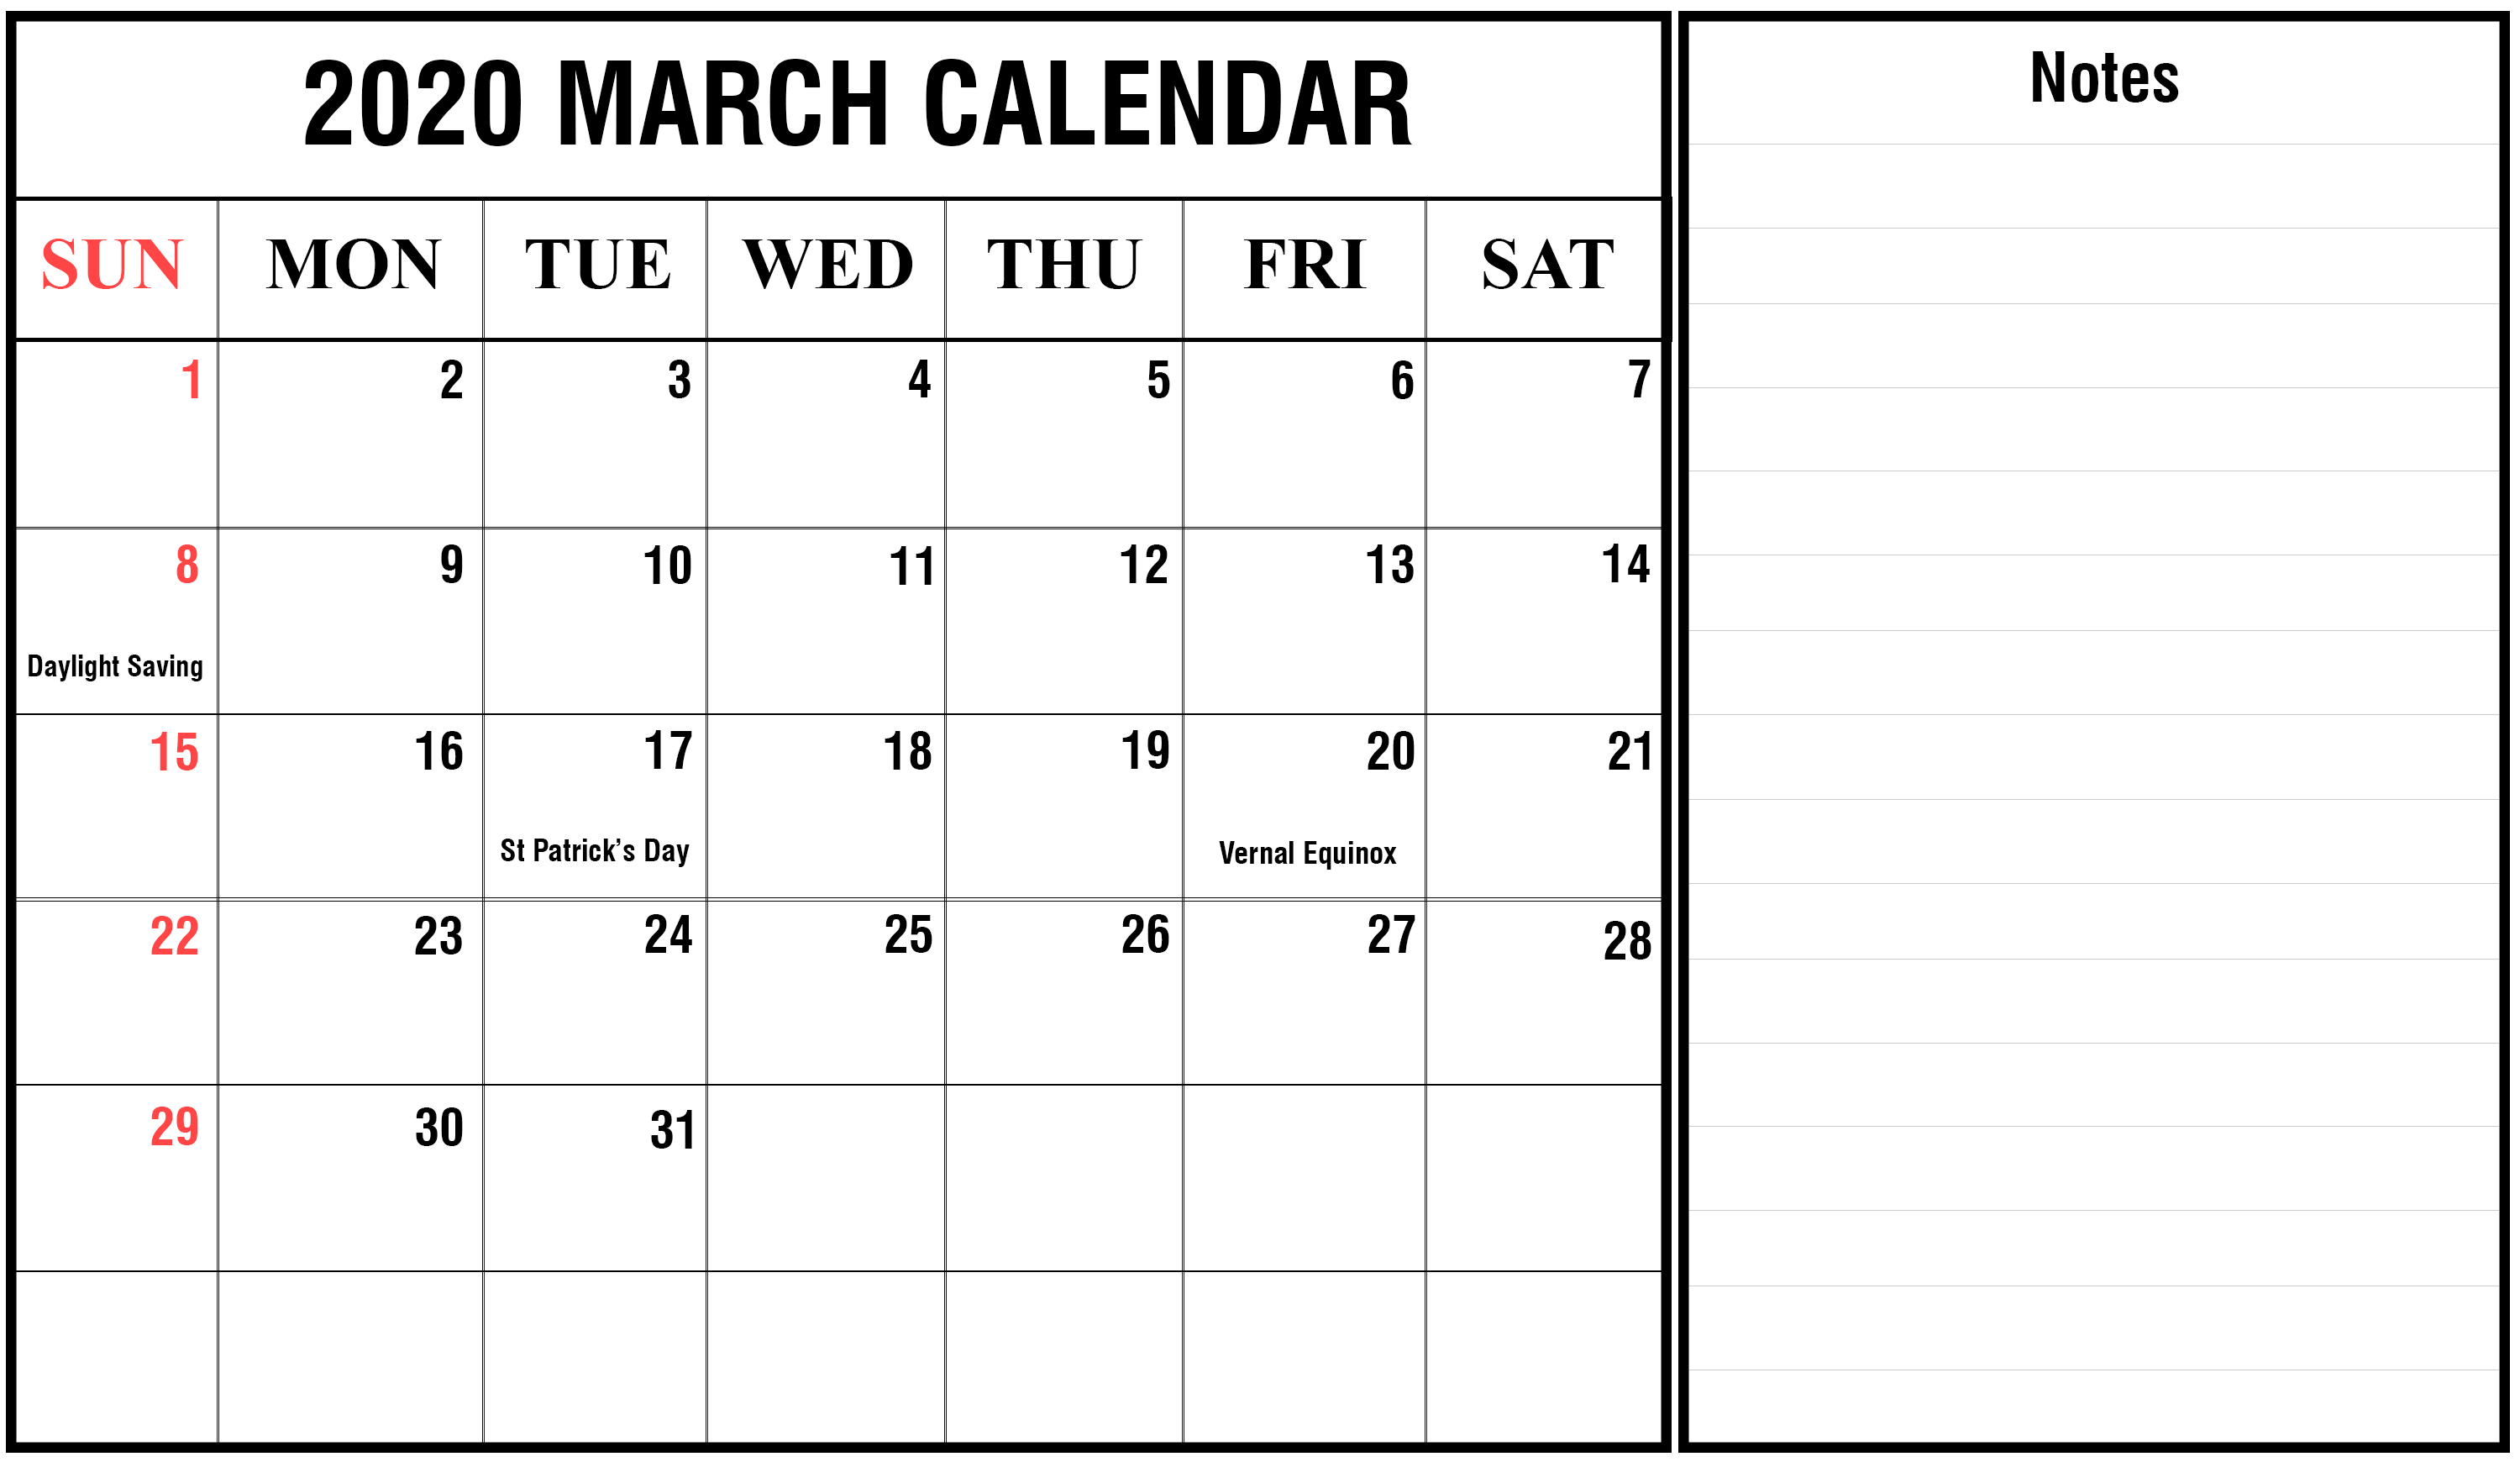 Free March 2020 Calendar With Notes